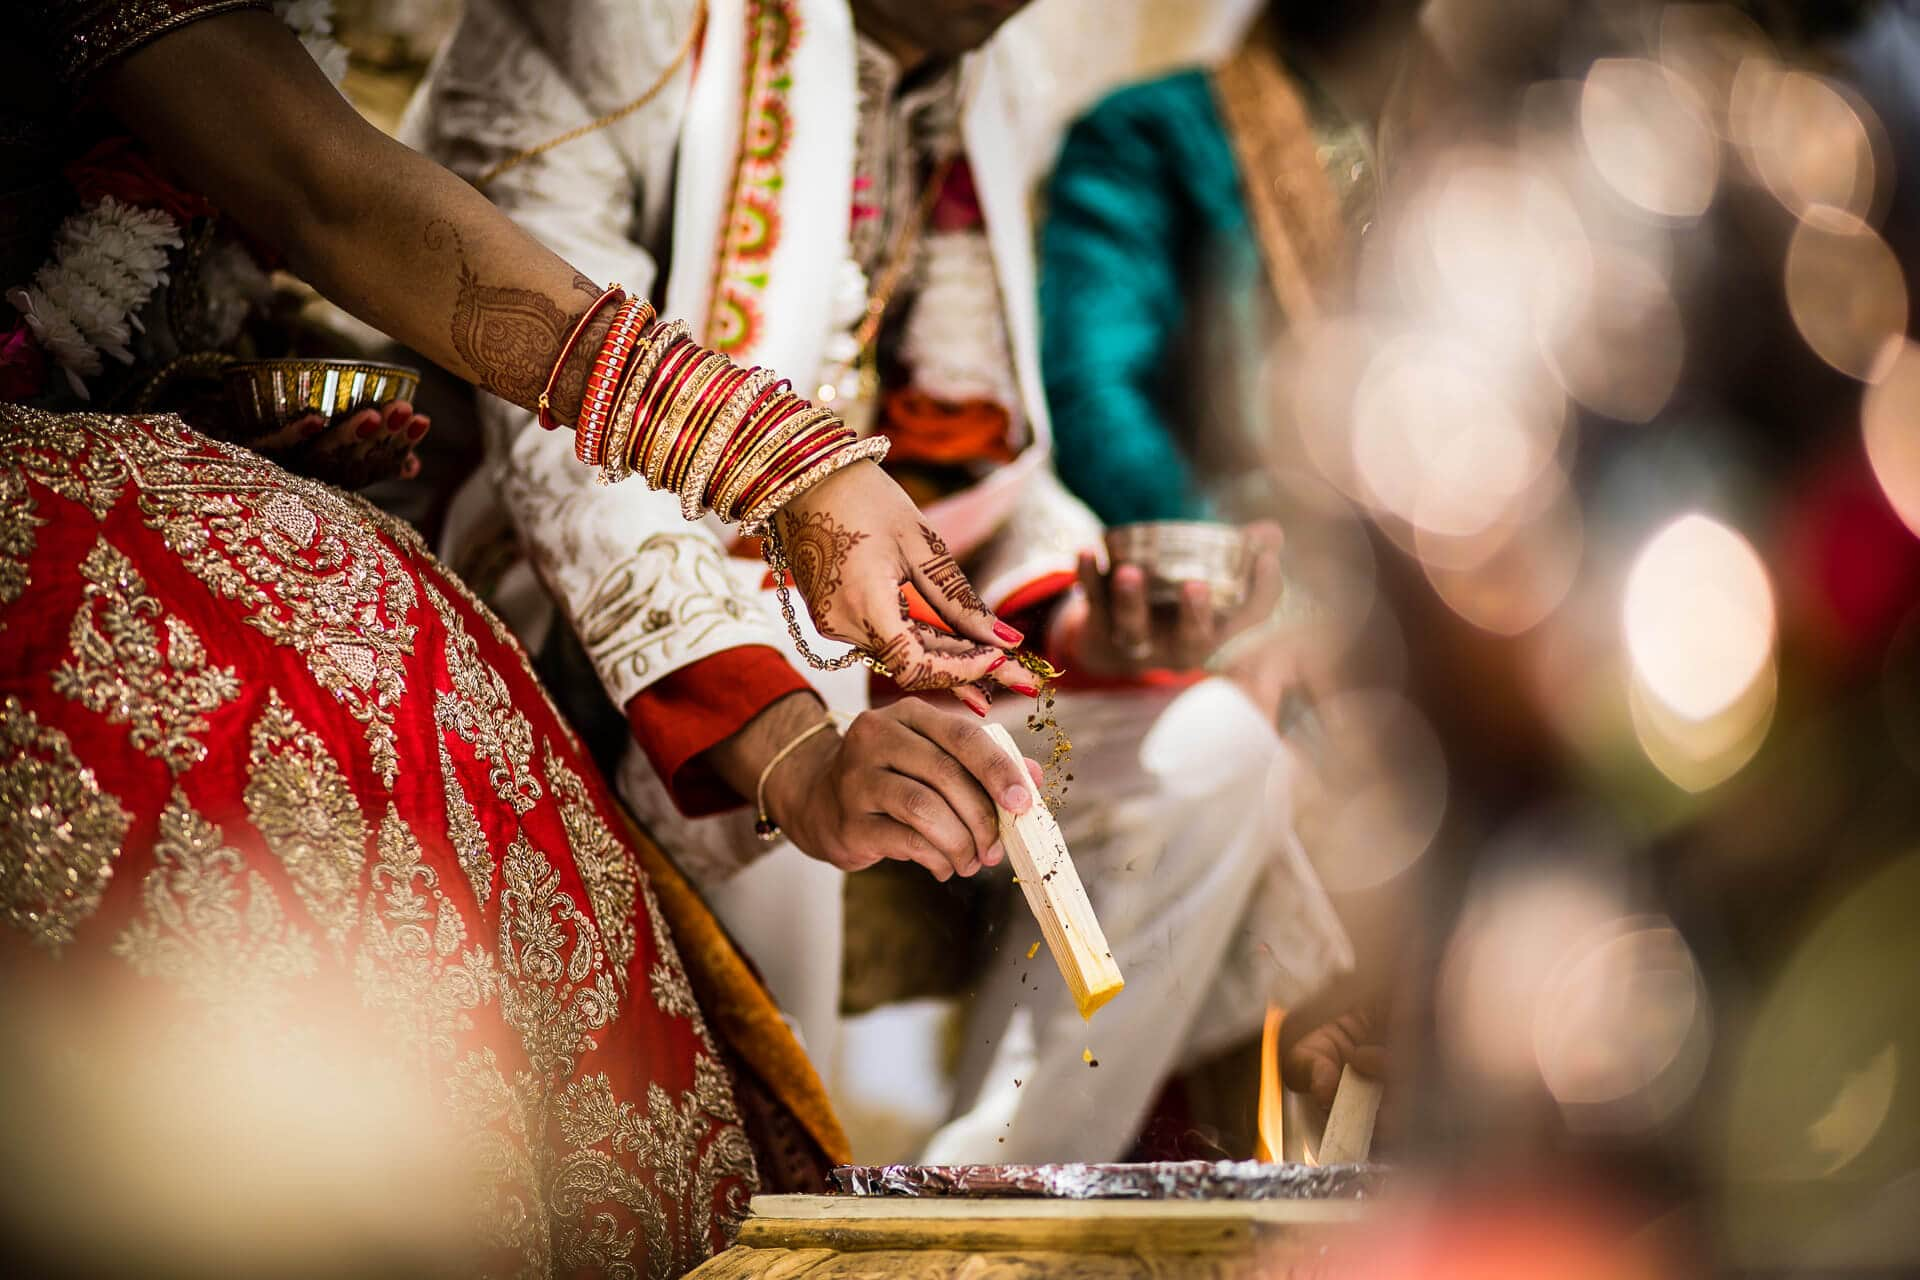 Seeds being poured into the fire during Hindu wedding